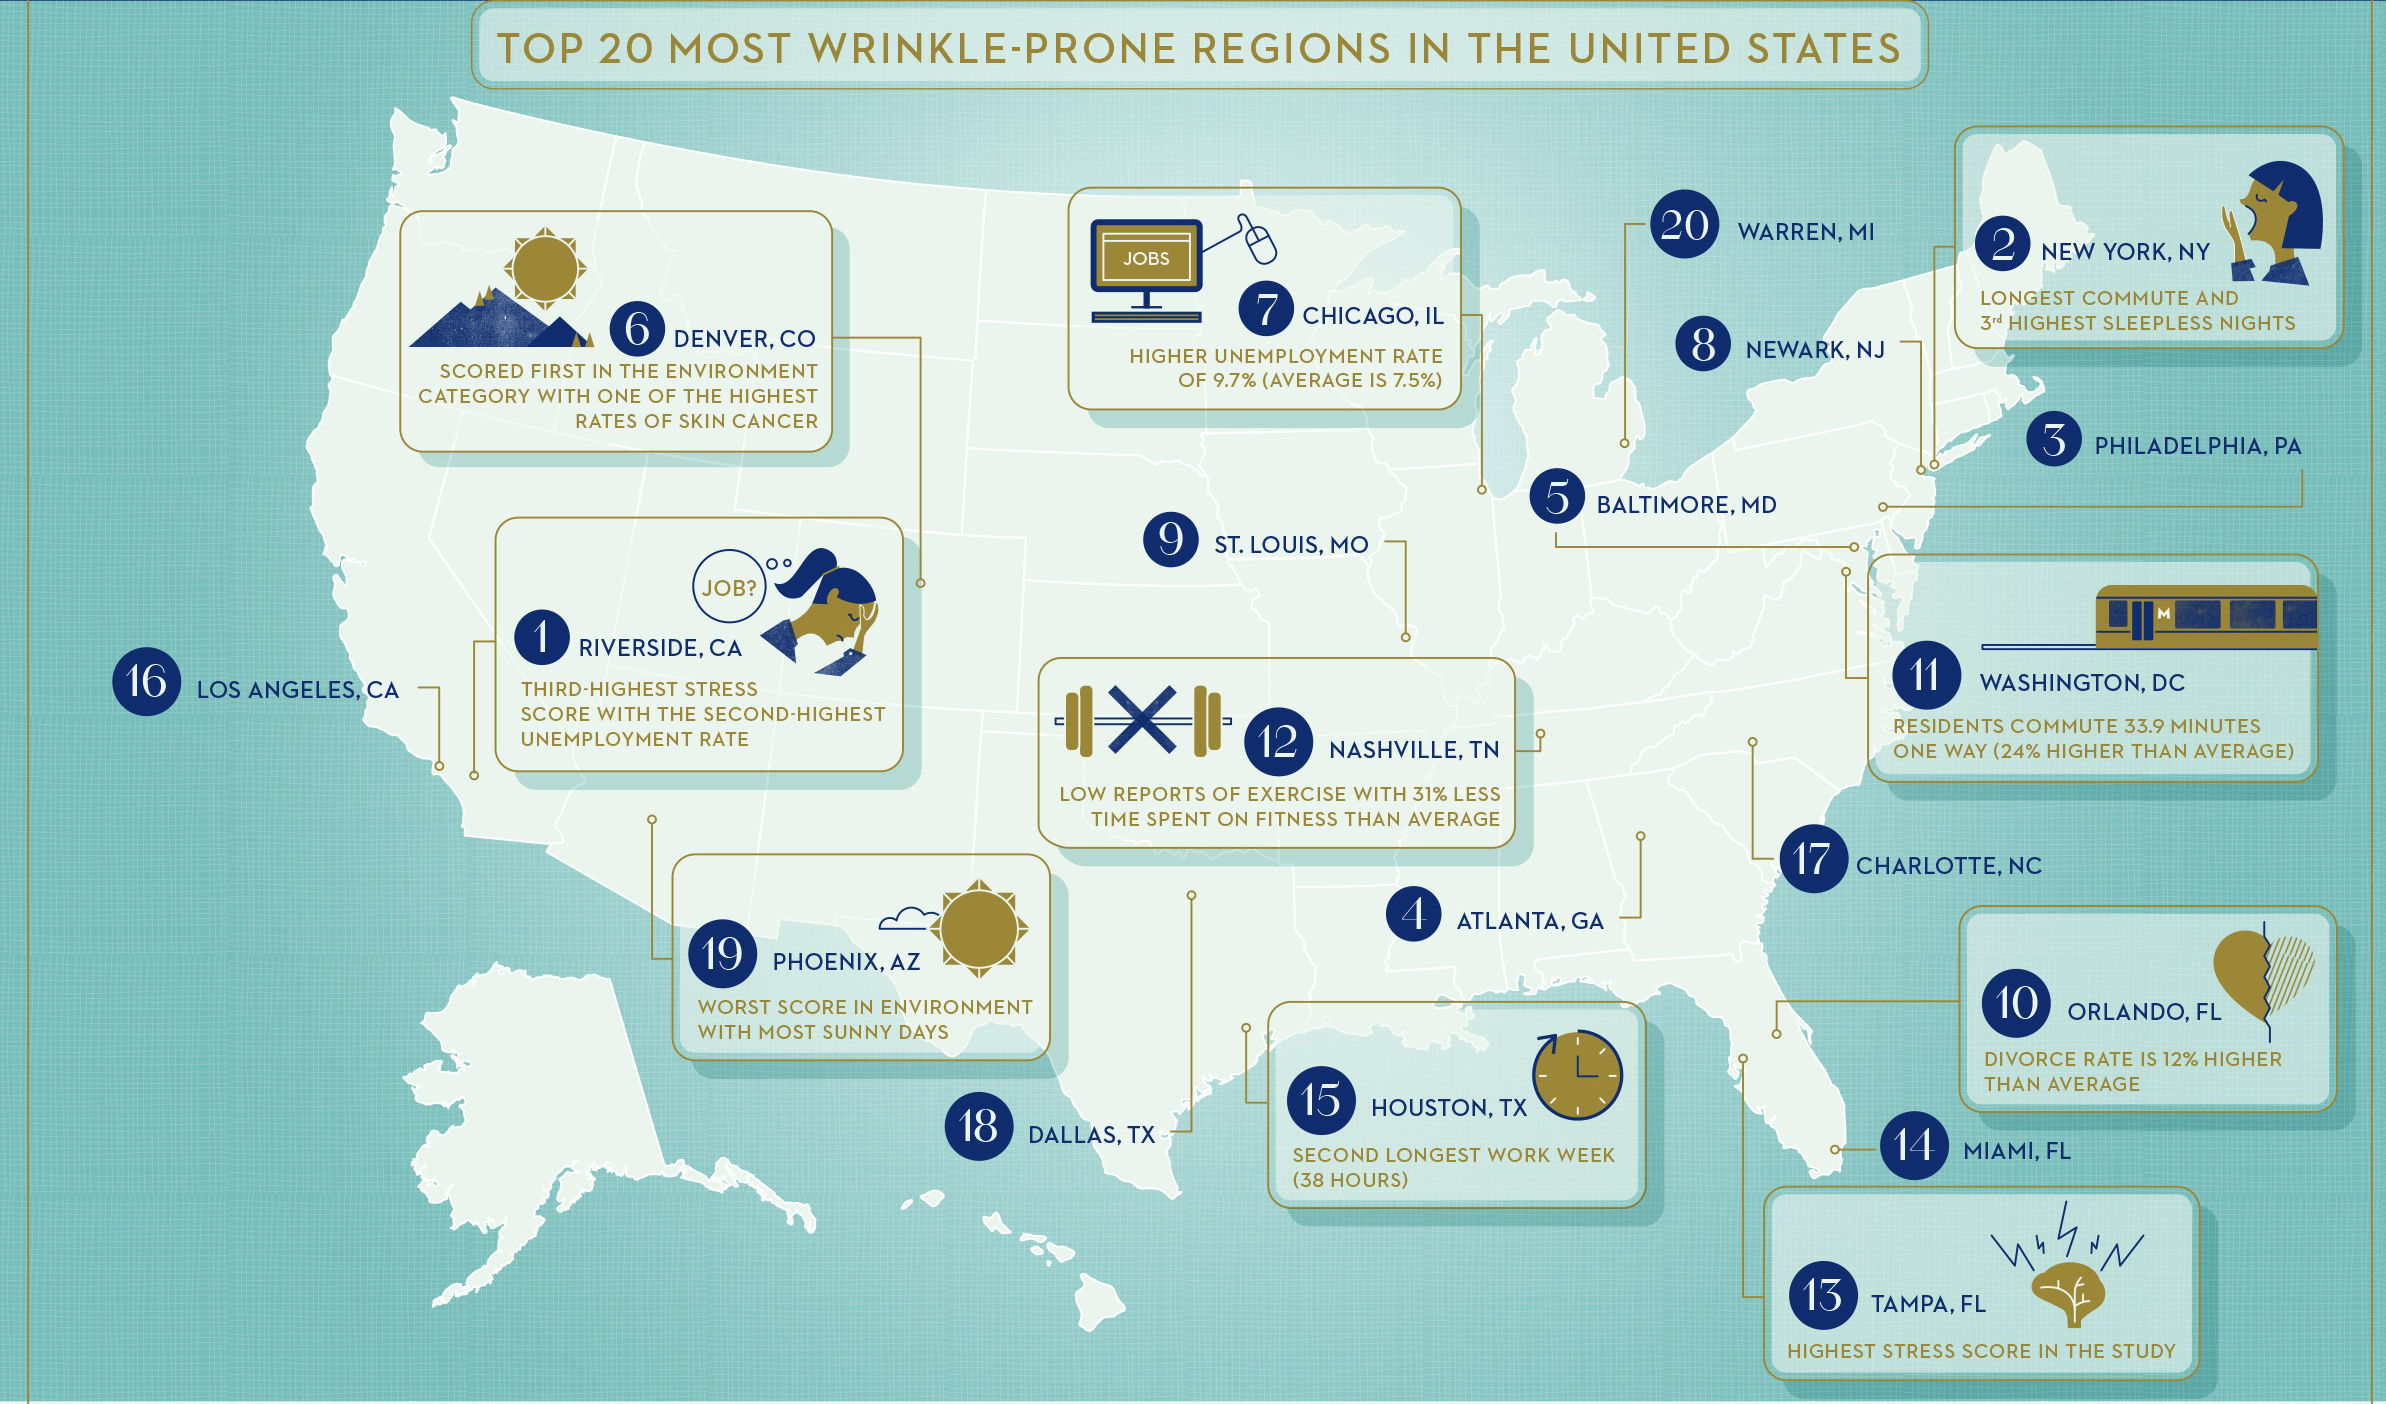 The DMV ranked 11th in a study of wrinkle-prone cities. (Graphic: Johnson  & Johnson)